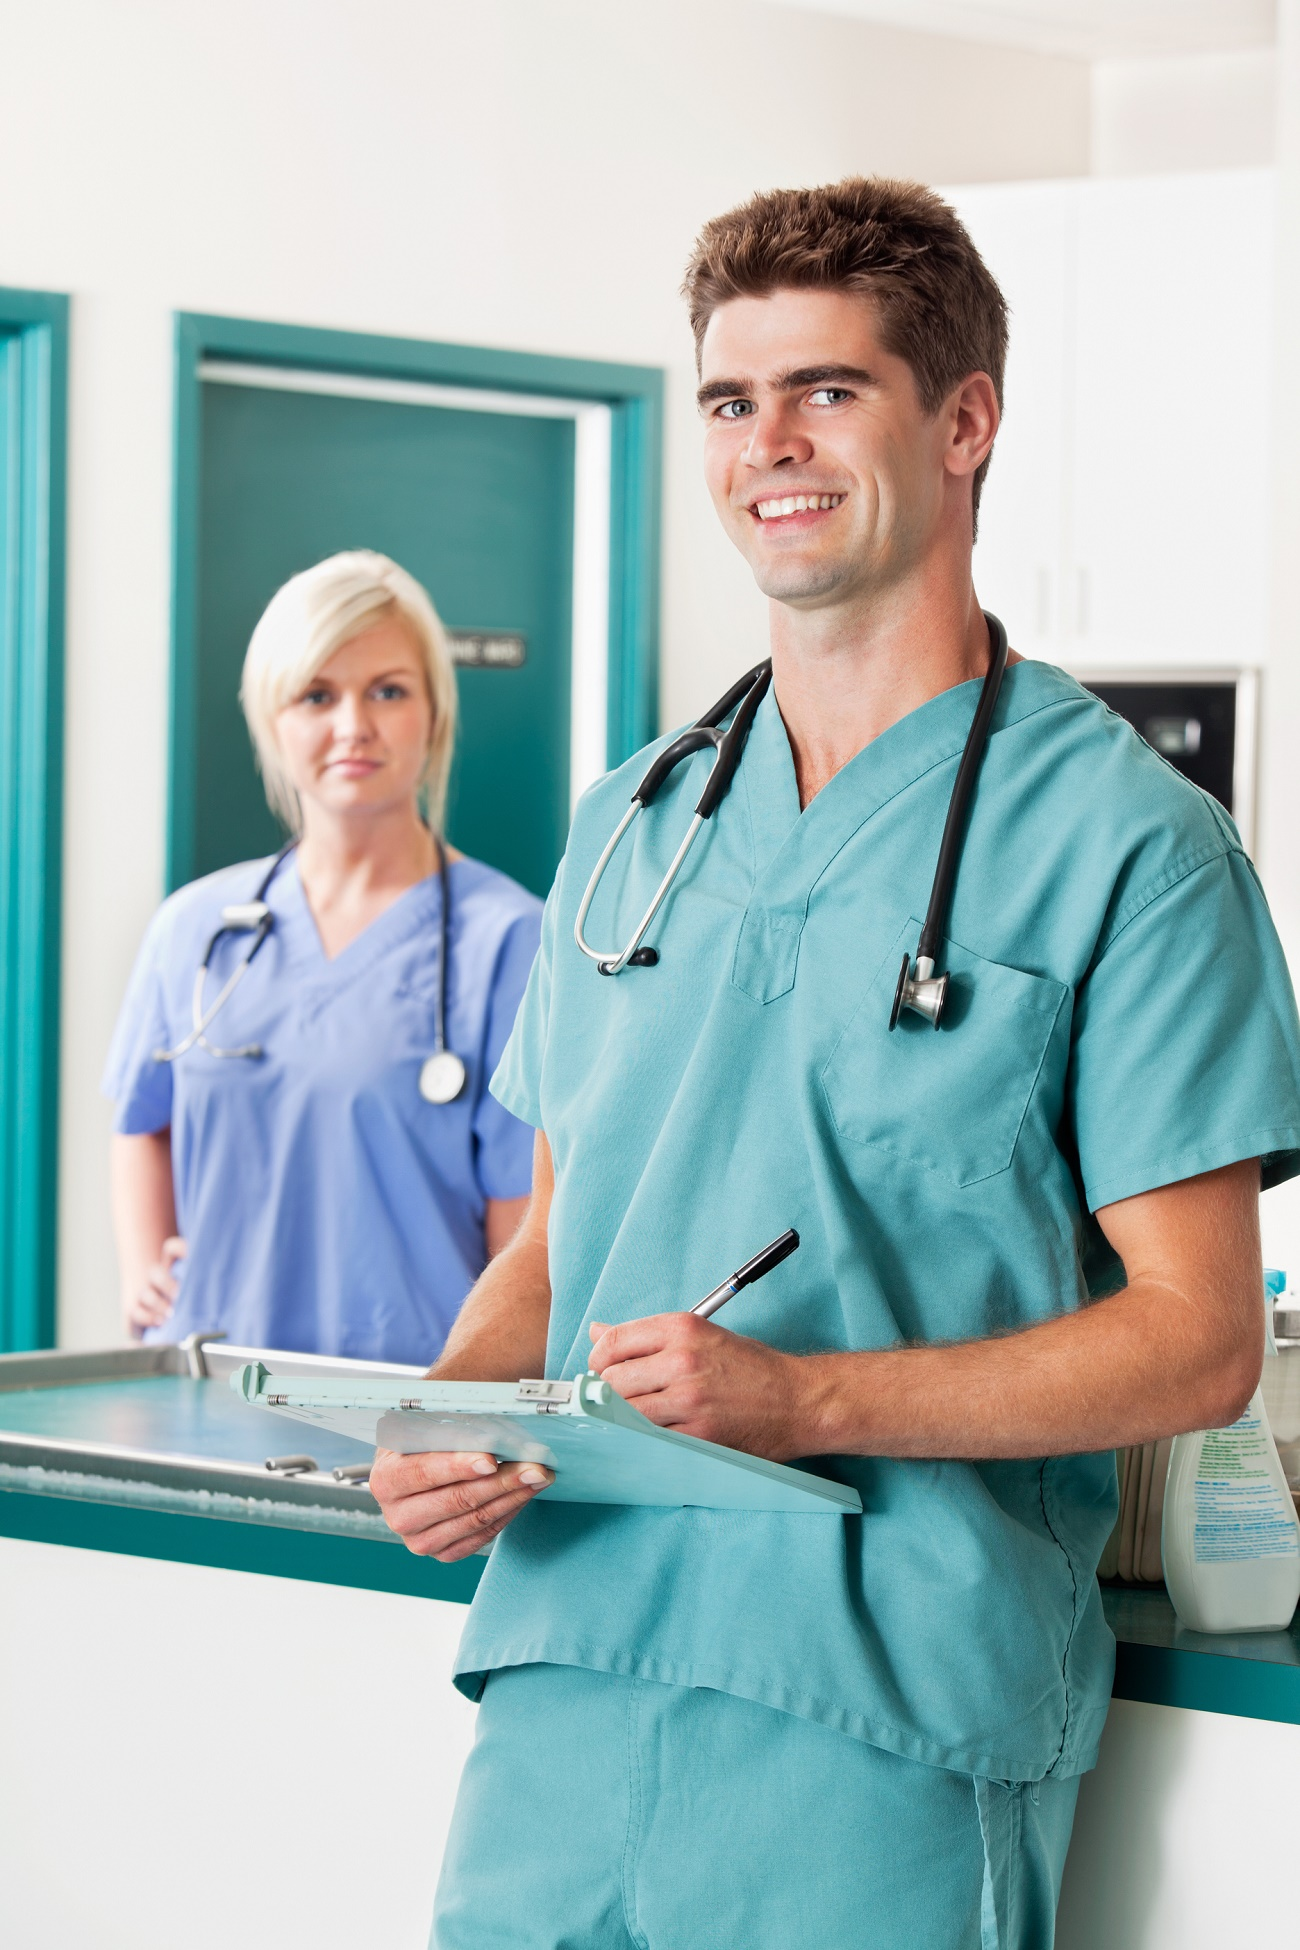 Portrait of smiling male veterinarian with clipboard while assistant in the background